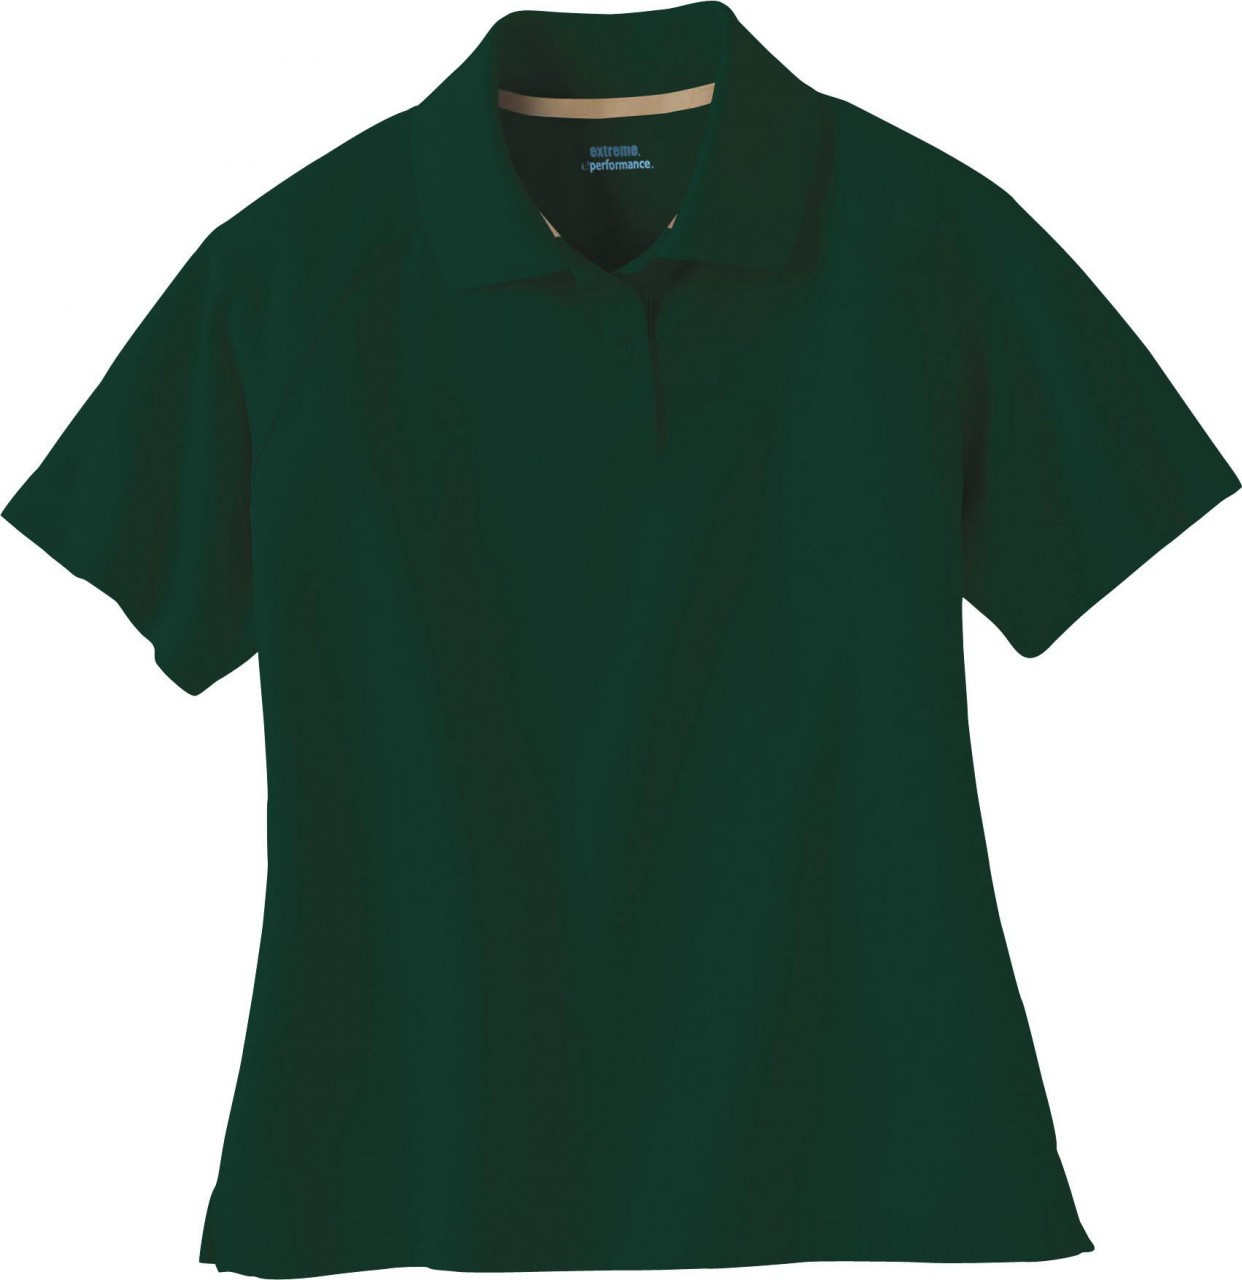 Forest - 75046 Extreme Ladies' Eperformance Pique Polo Shirt | BlankClothing.ca